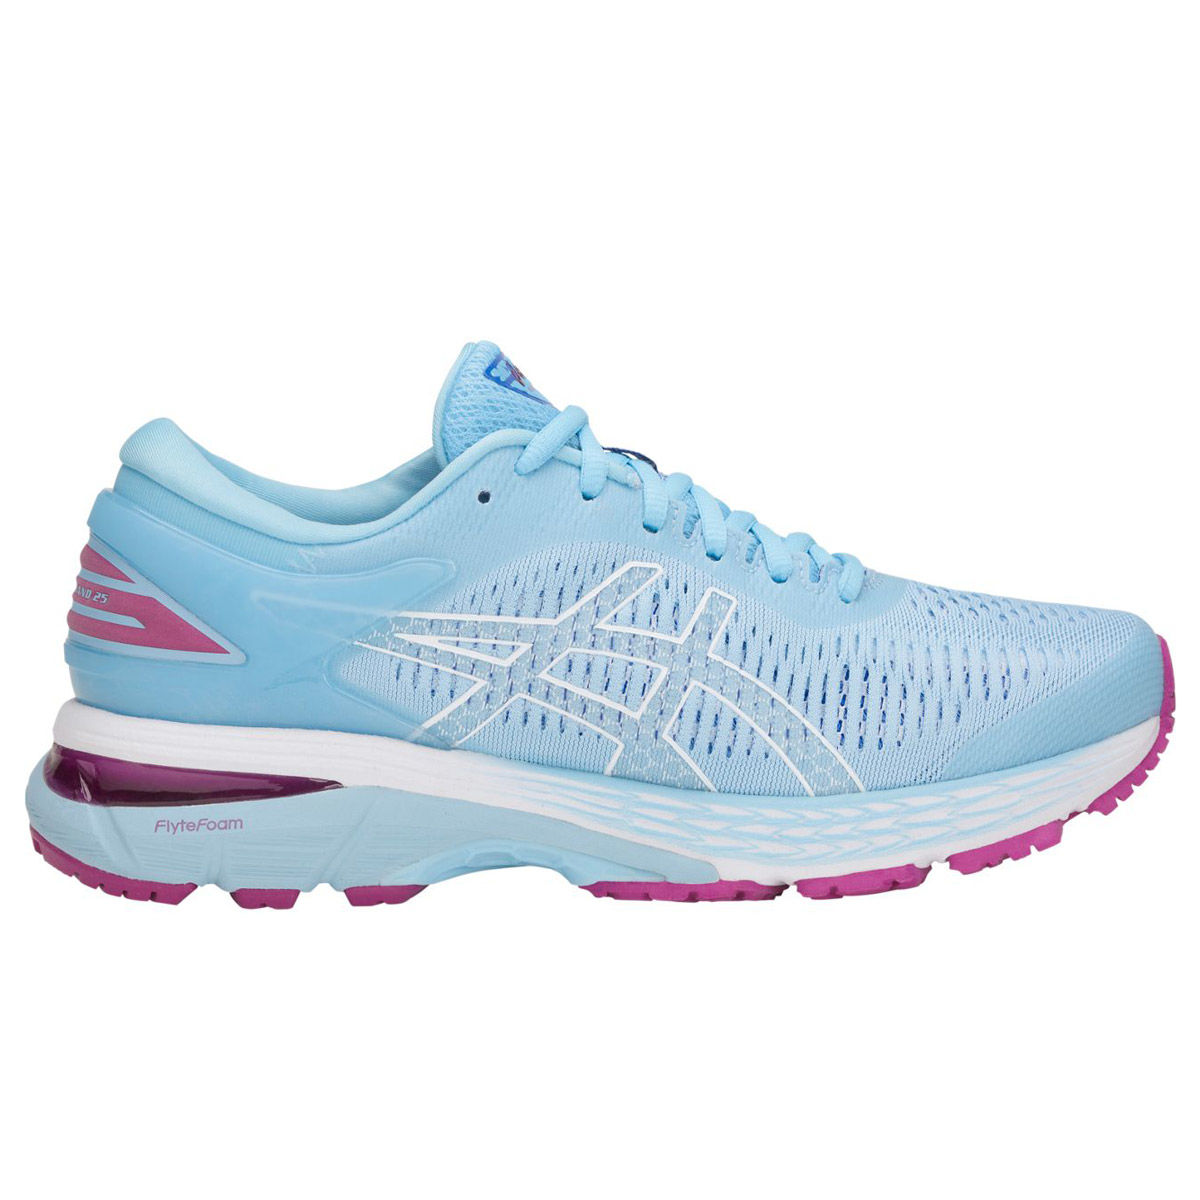 ASICS GEL-Kayano 25 Womens Running Shoe